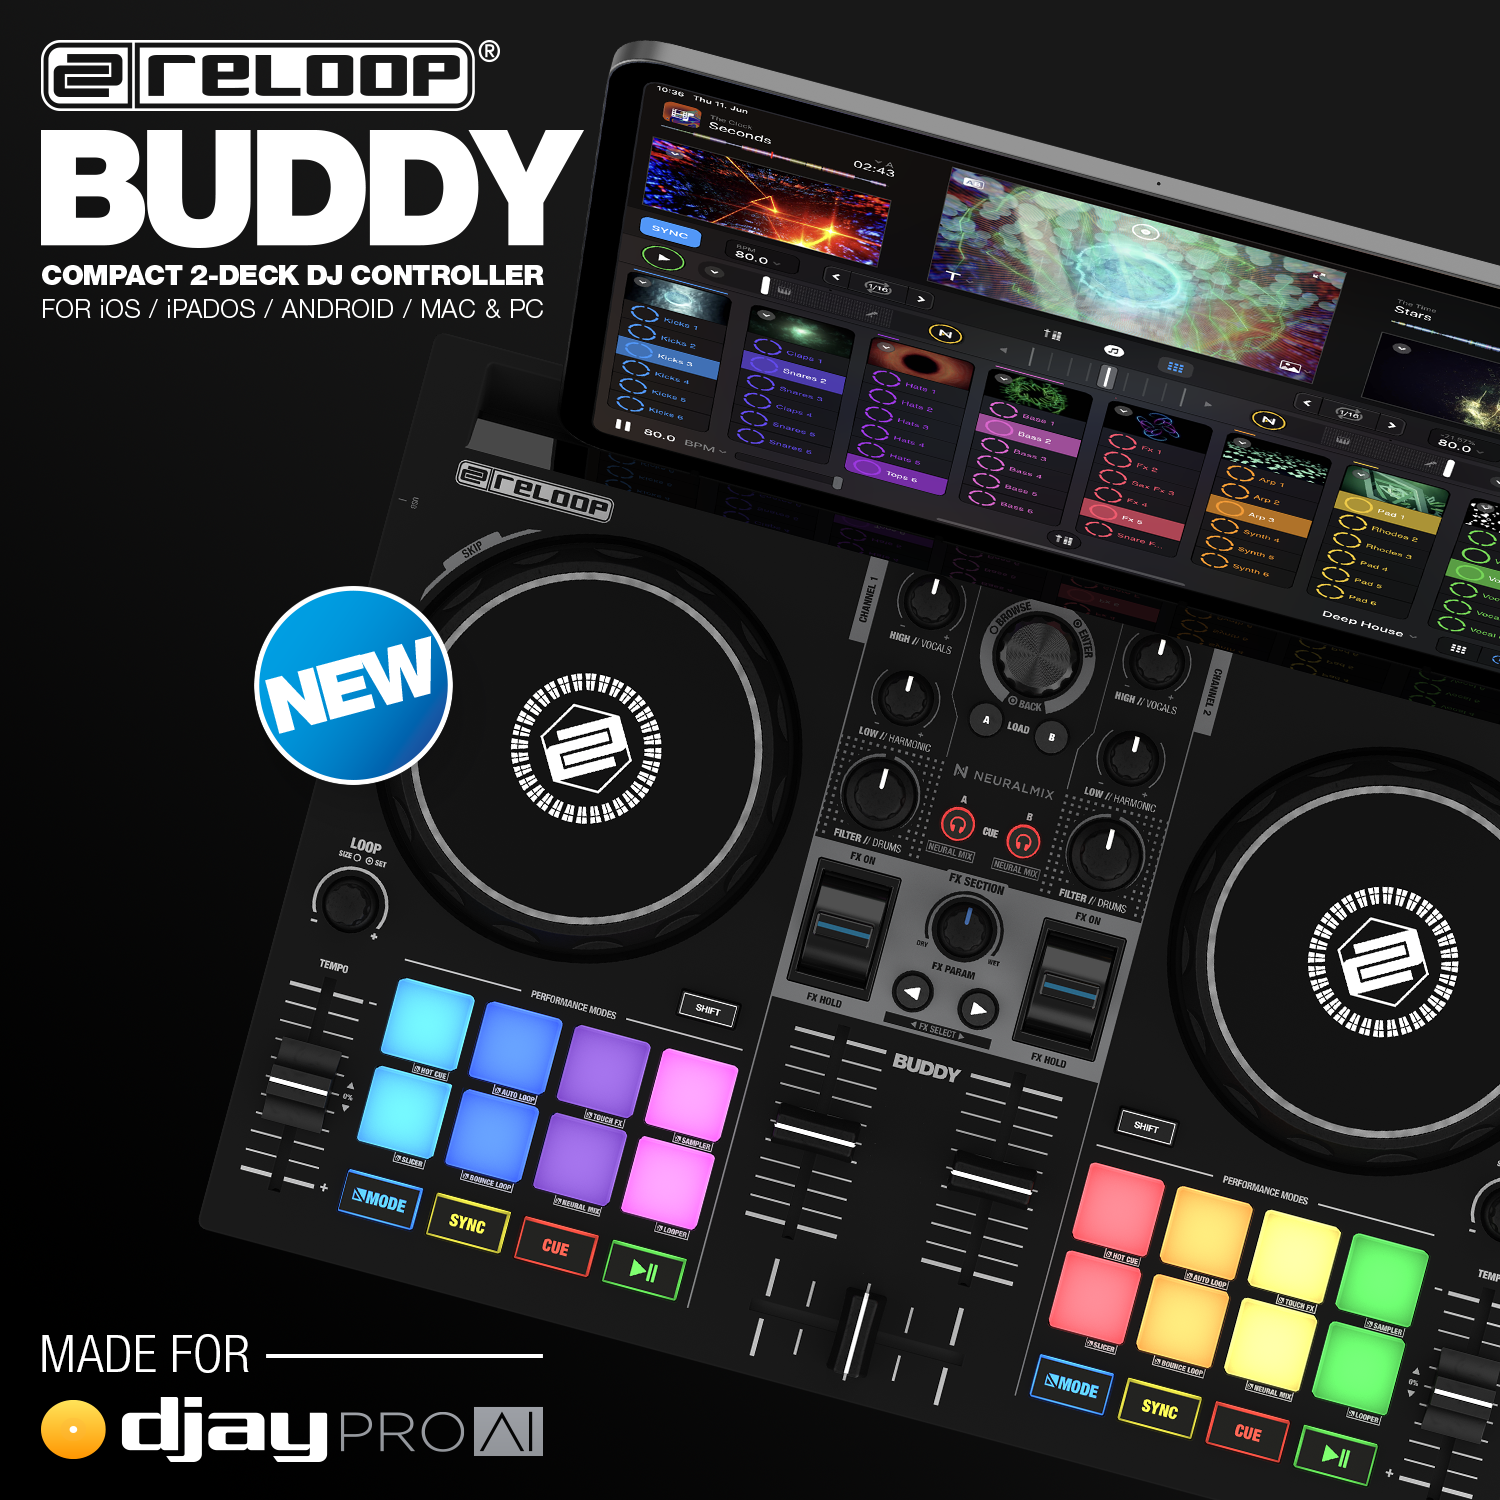 NEW: Reloop Buddy - Compact 2-Deck djay Controller for iOS / iPAD OS / Android / Mac & PC